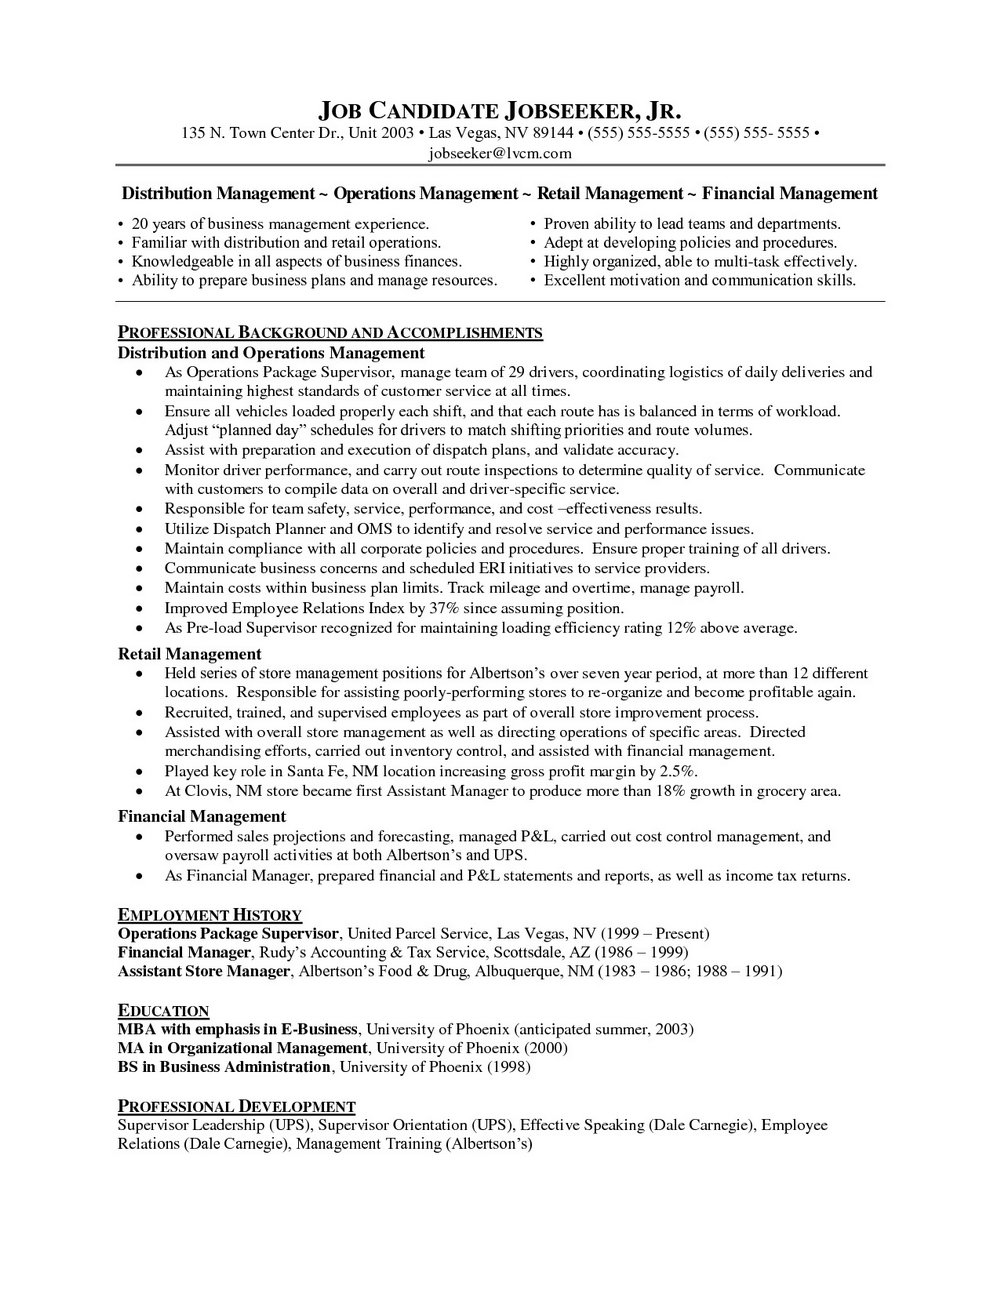 Resume Writing Services For Executives